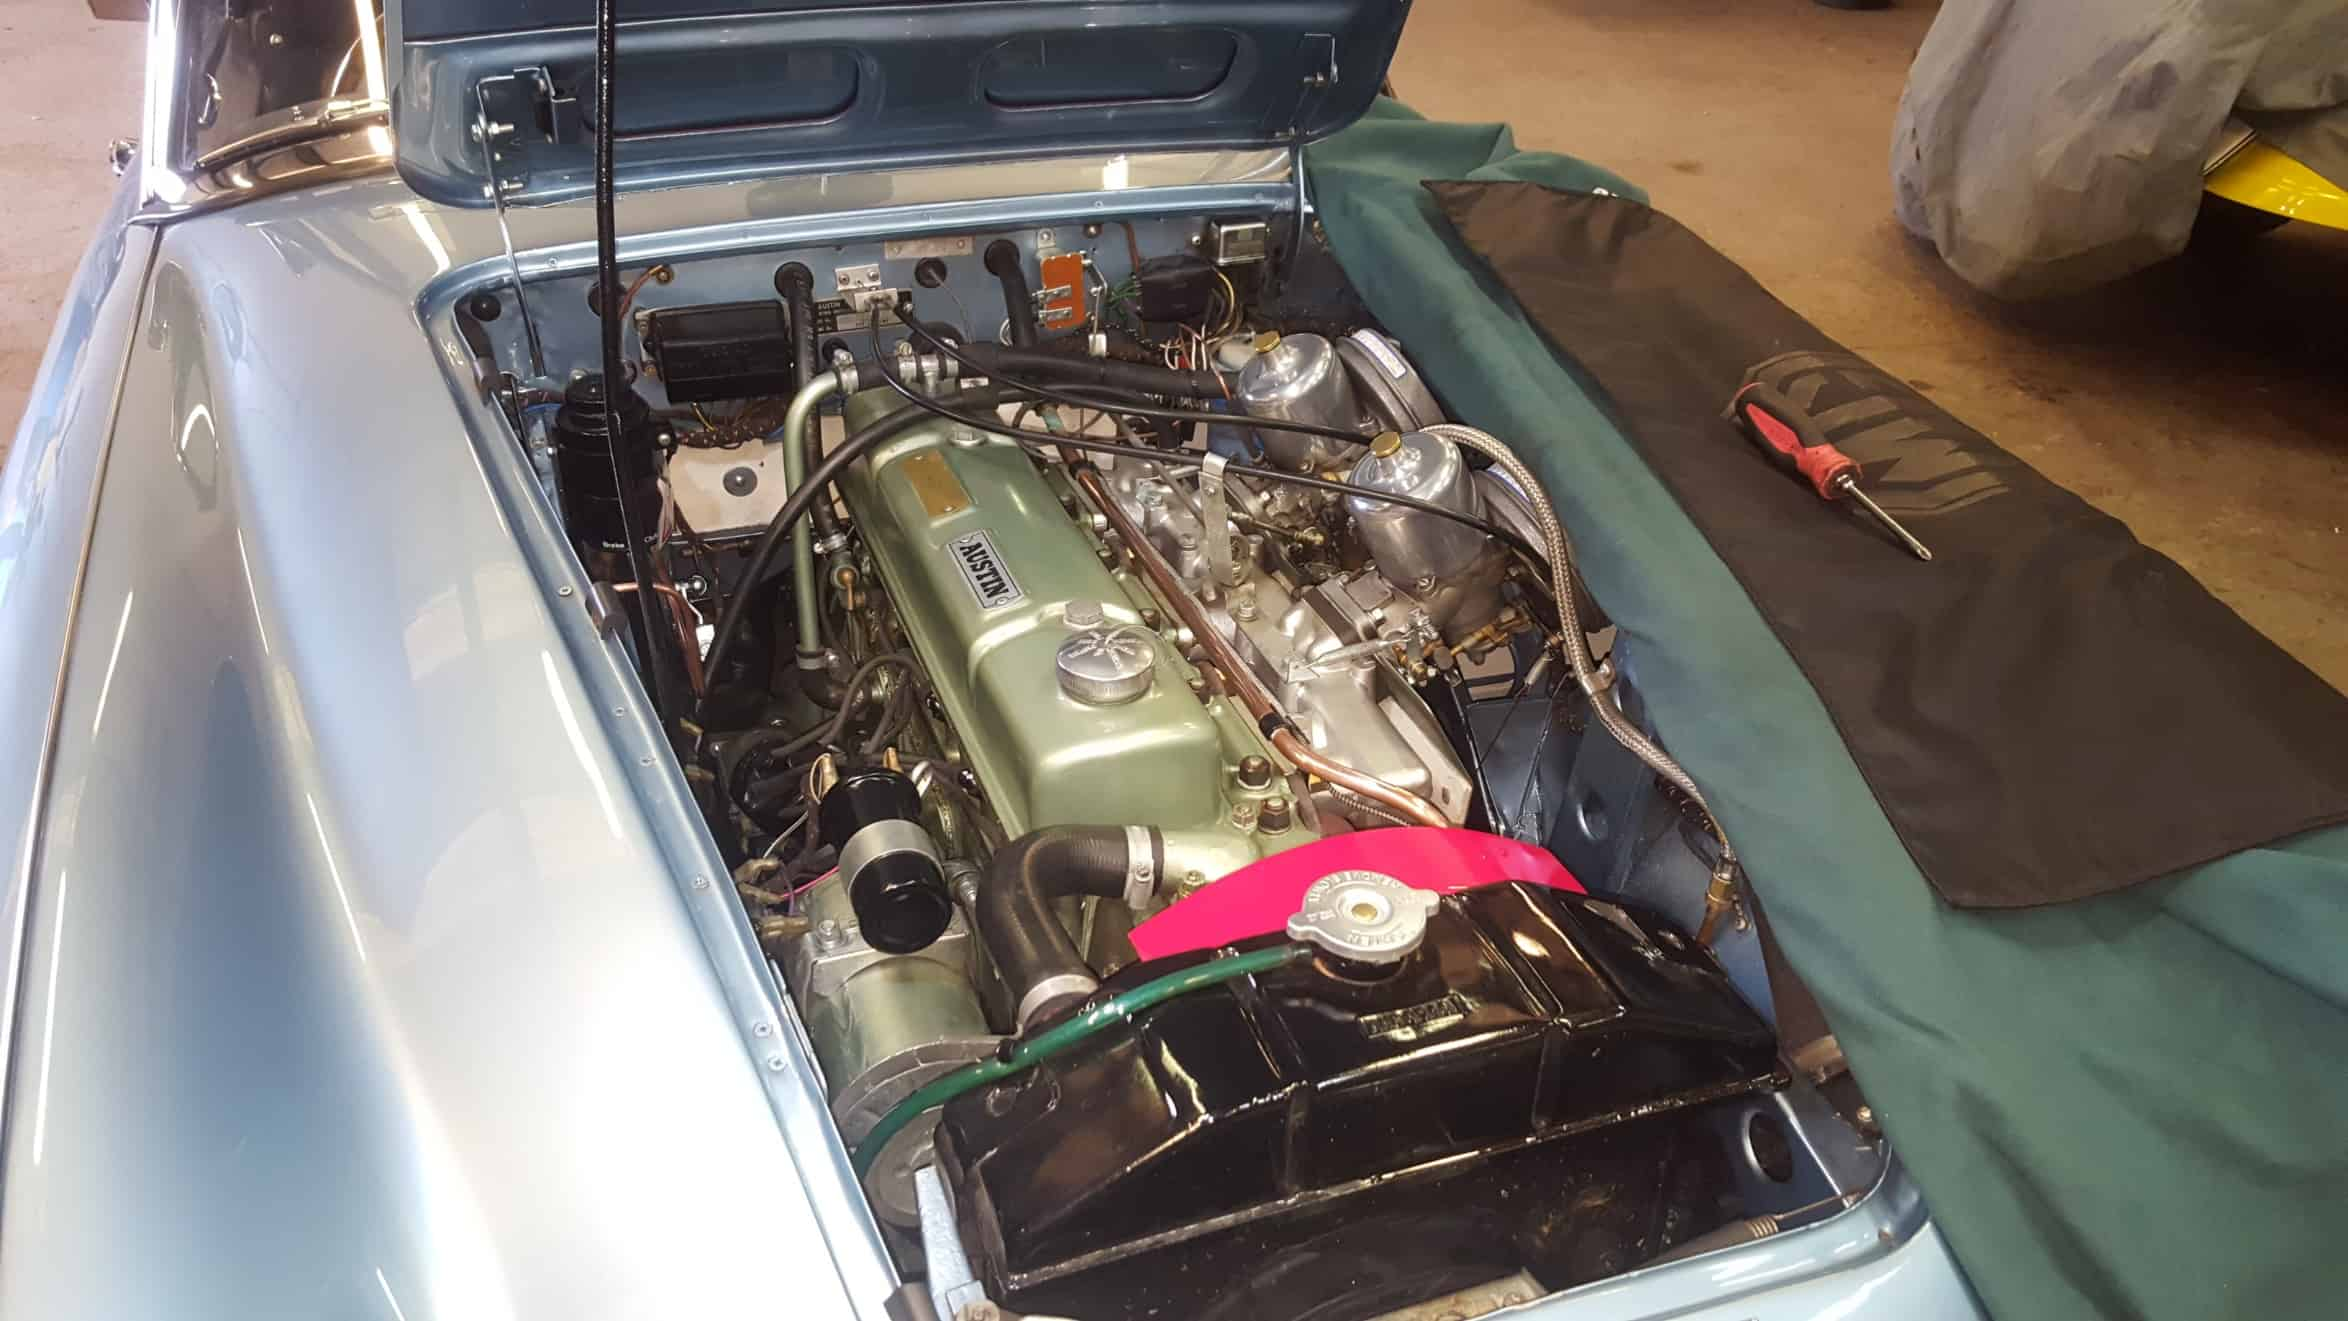 Austin Healey 3000 - Carburettor tune up